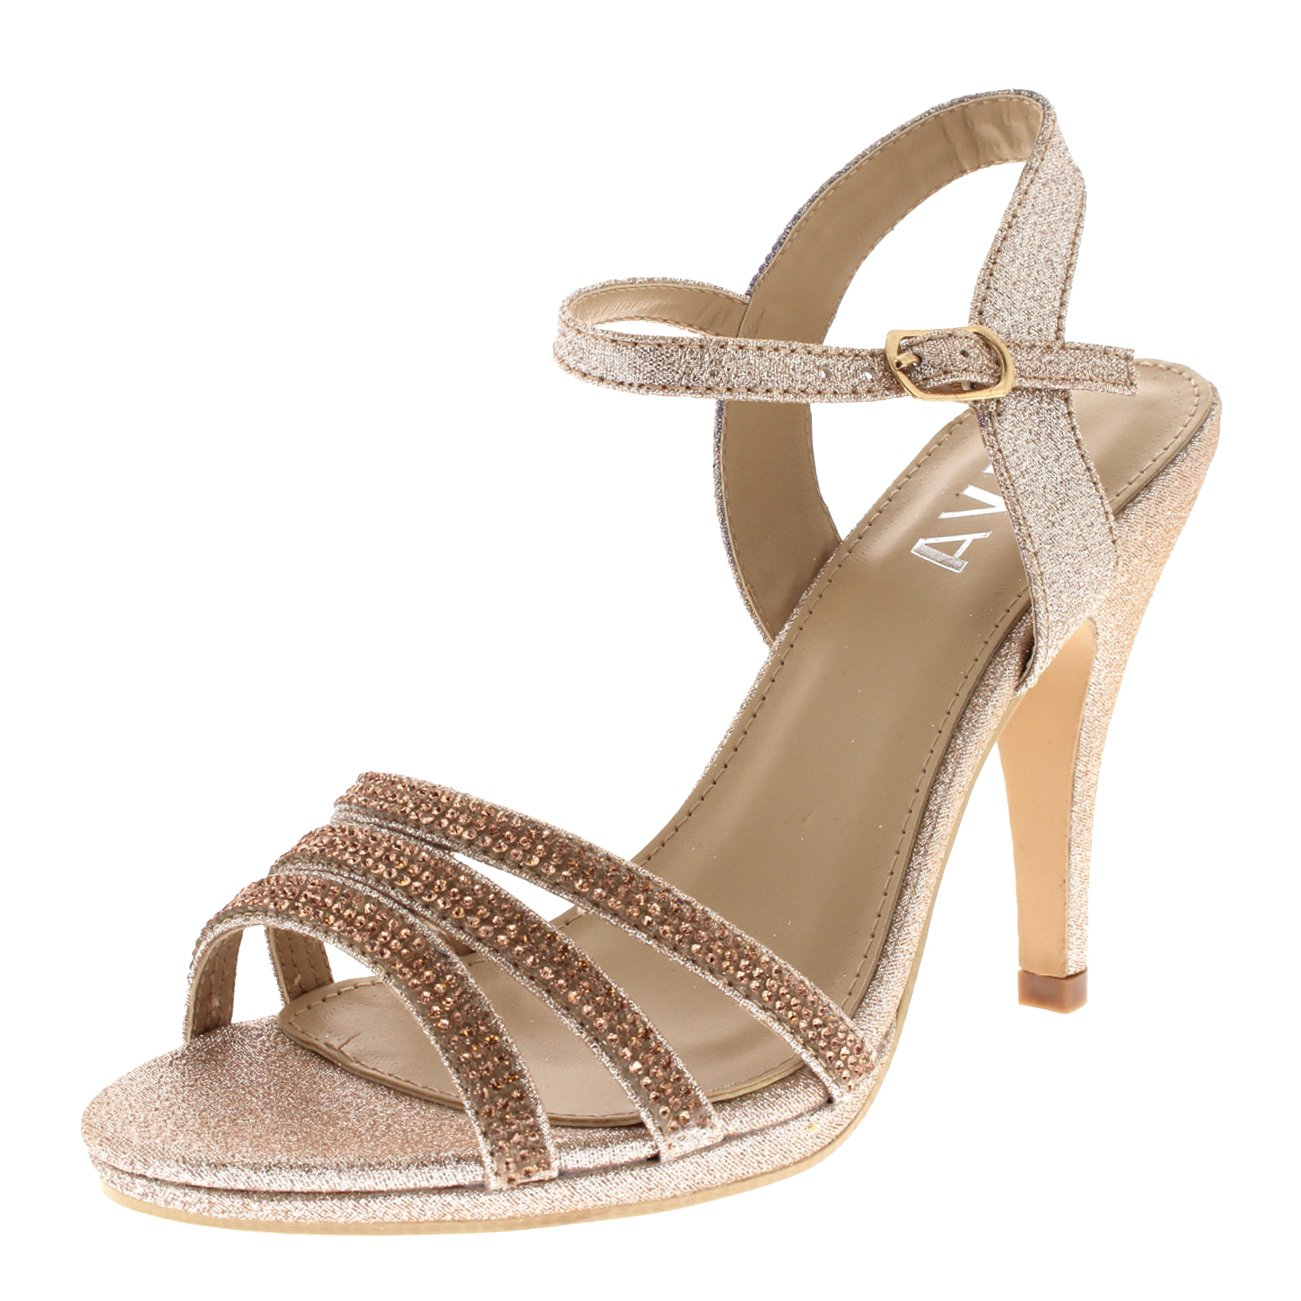 Viva Womens Diamante Mid Heel Ankle Strap Wedding Party Evening Party Sandals Shoes - Rose Gold KL0307R 8US/39